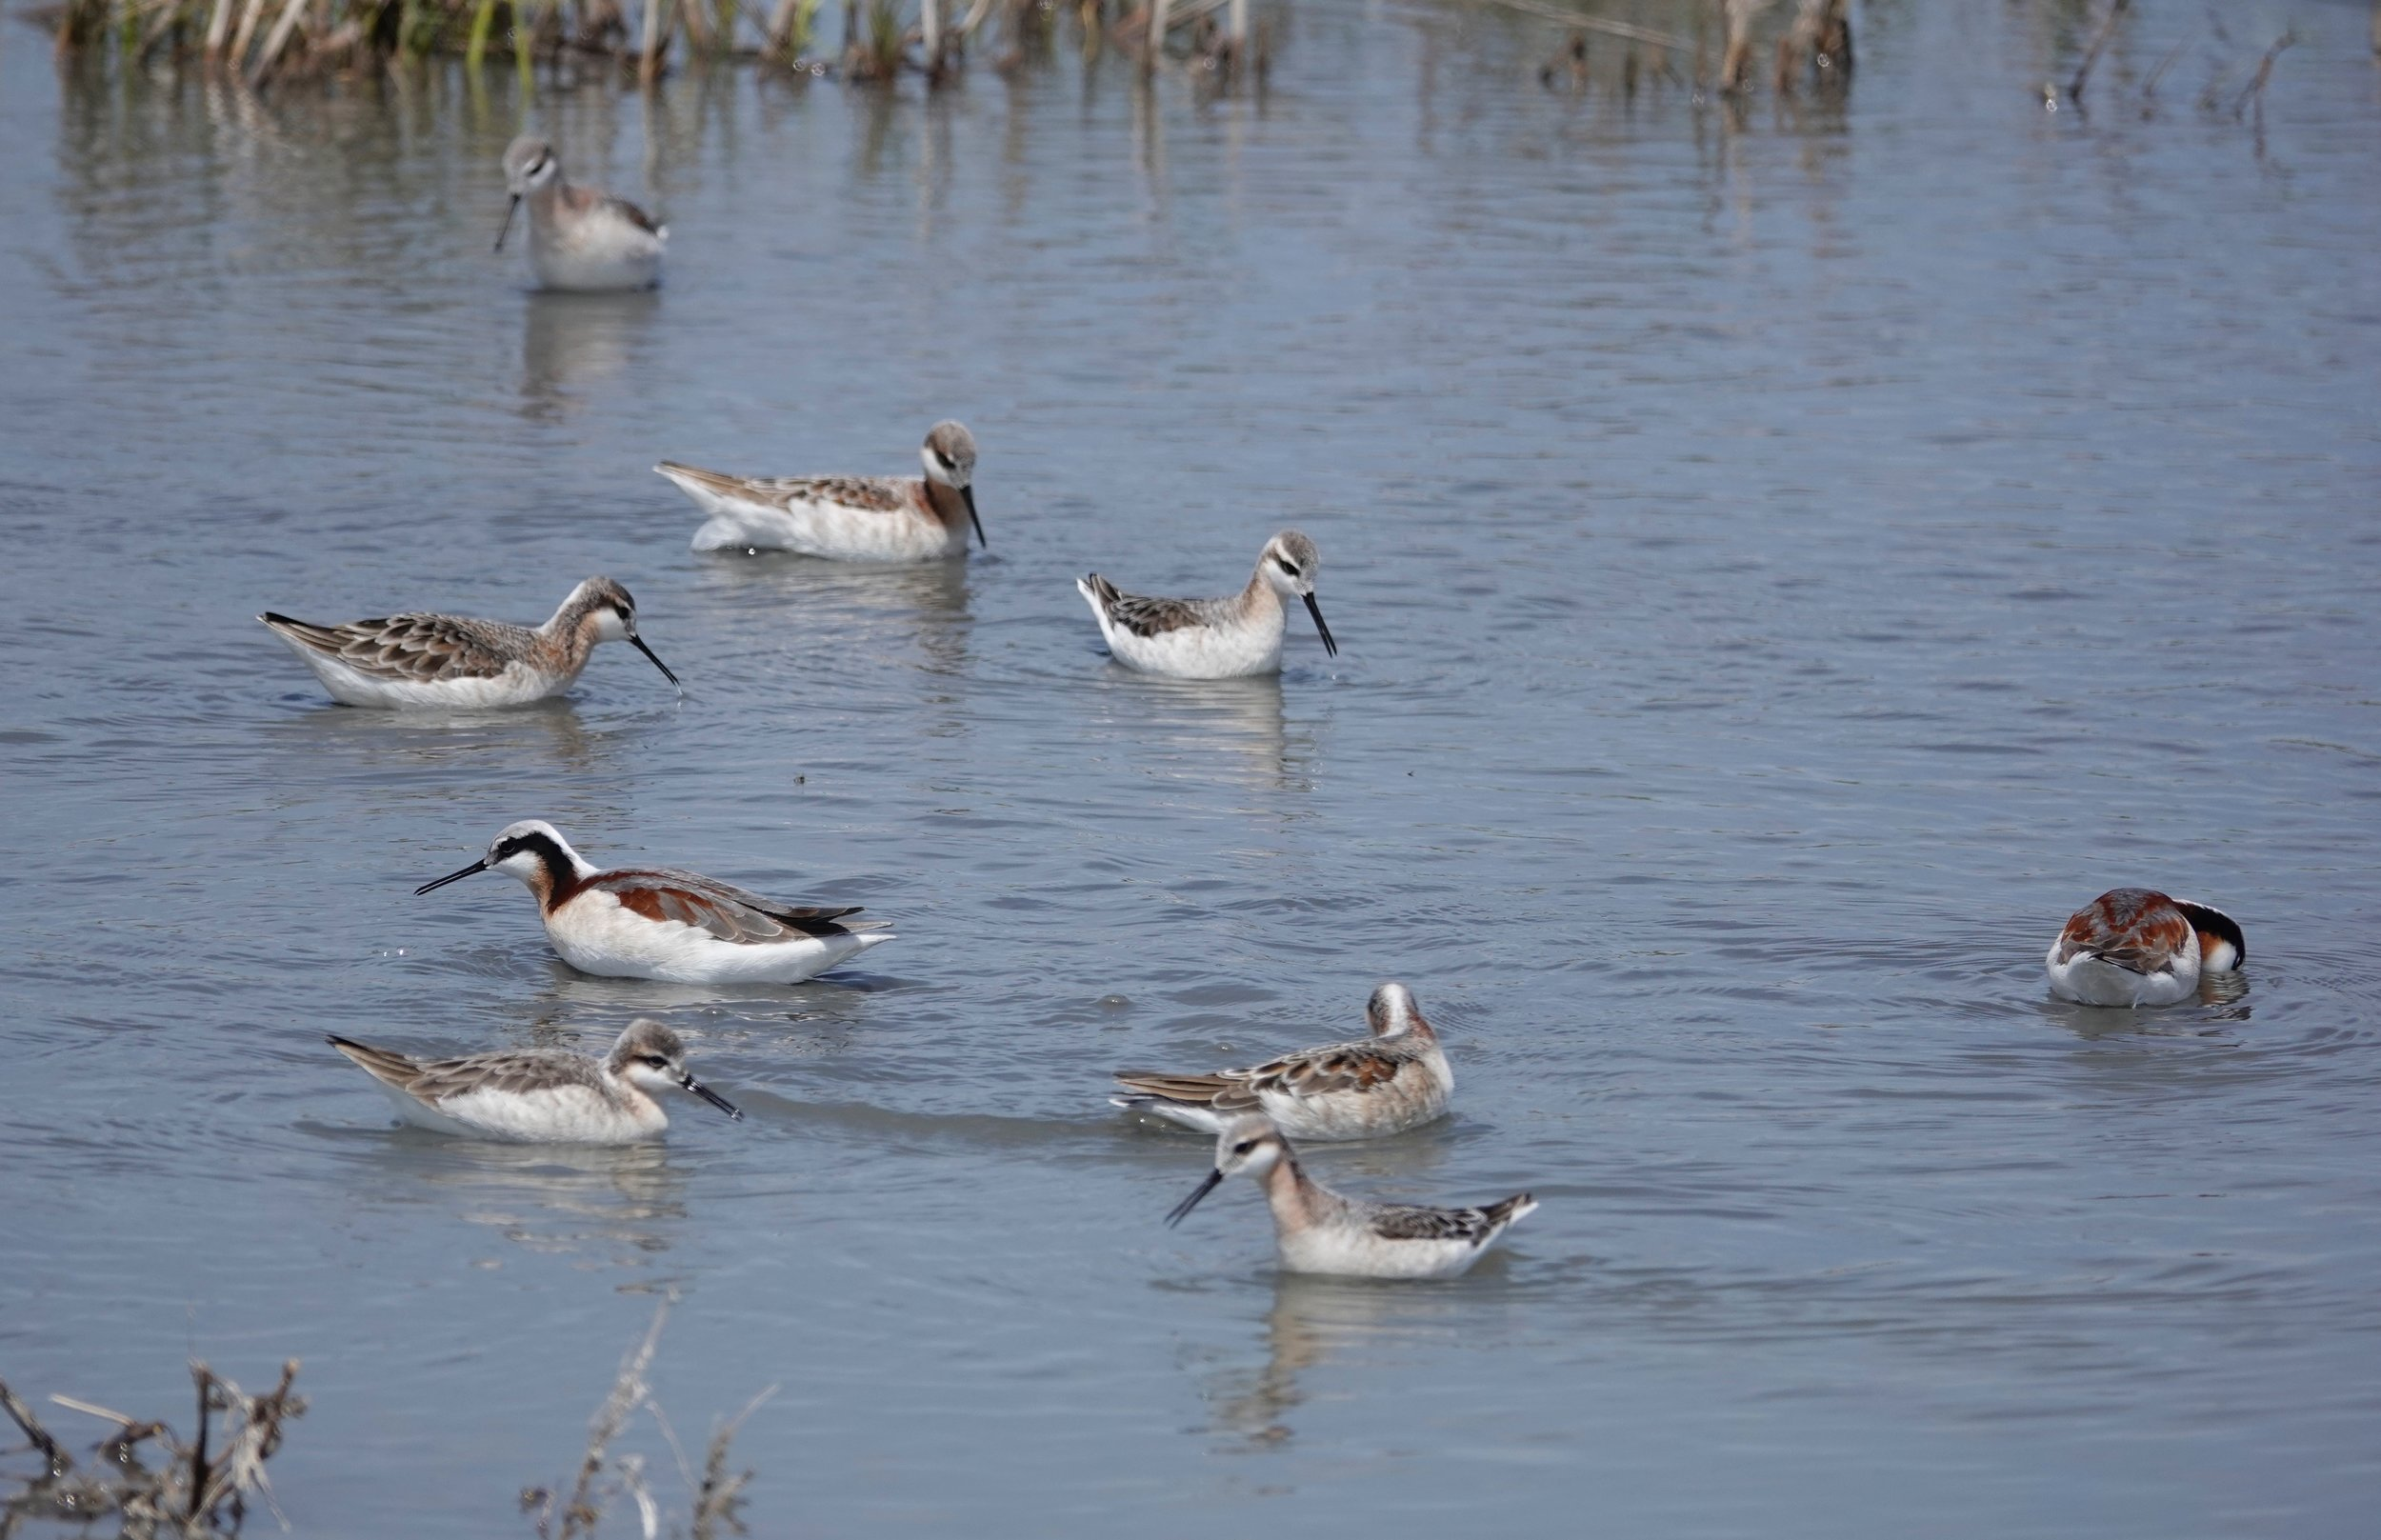 Wilson's Phalaropes at a spin class. The females are more colorful than the males. They spin in circles to create whirlpools that suck food to the water's surface.